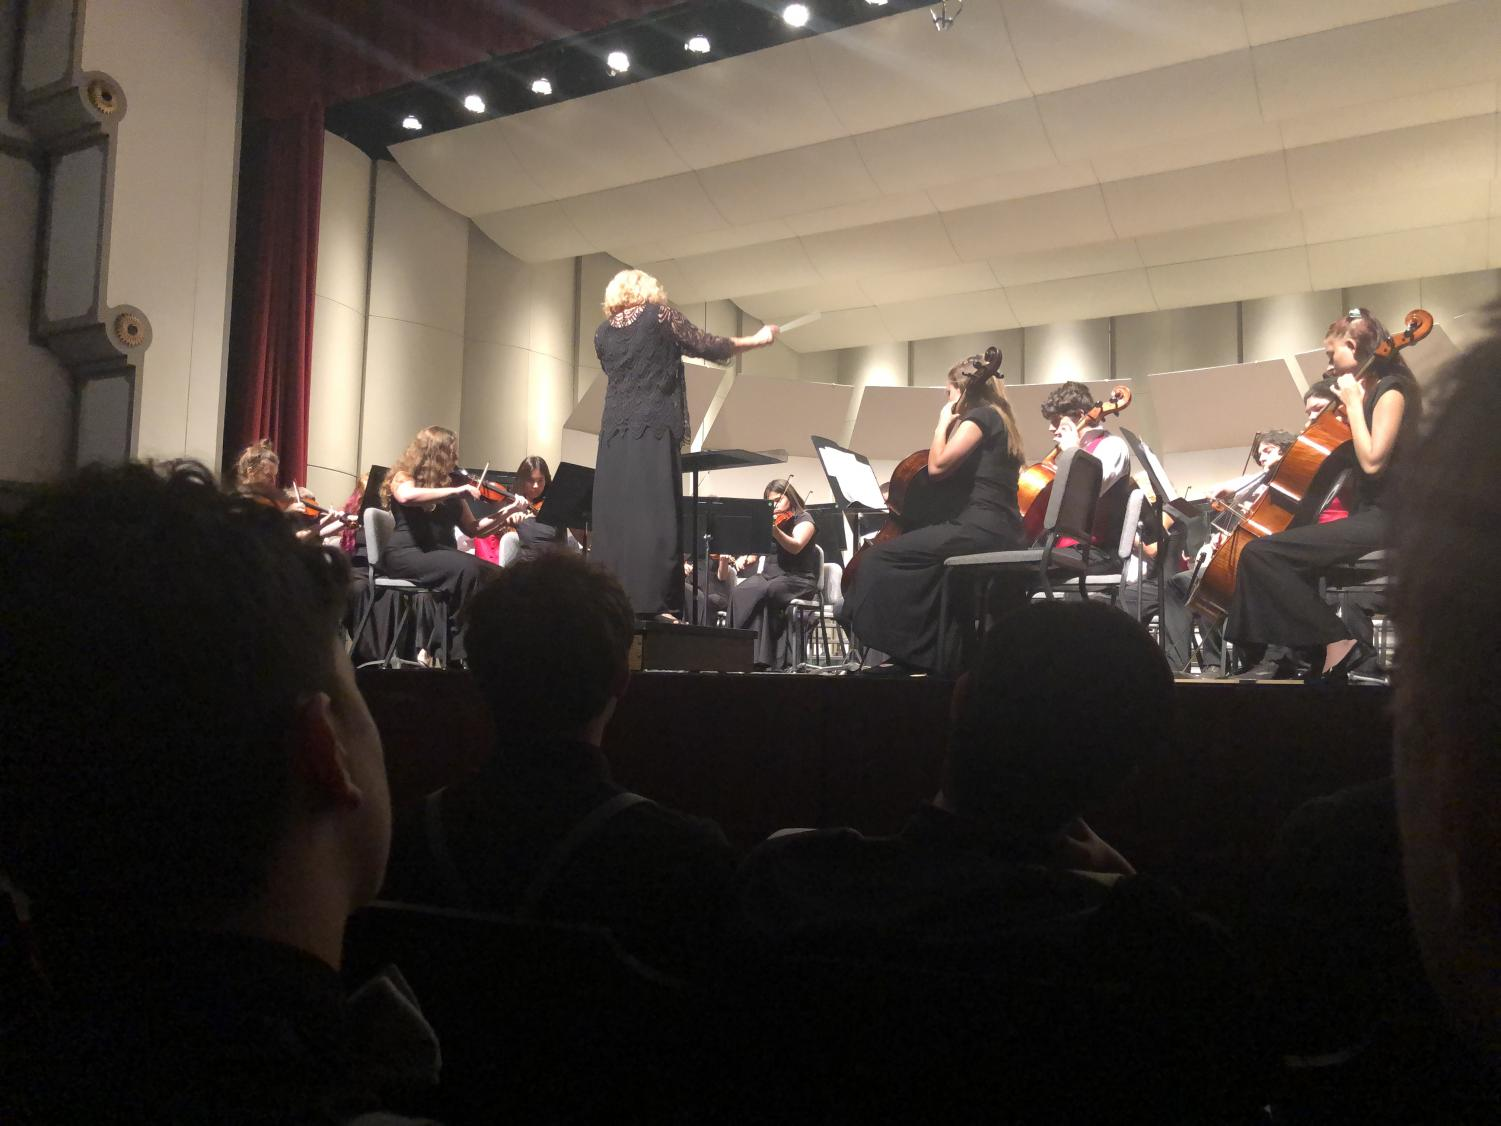 Orchestra director Joan Crull conducts the Concert Orchestra. Along with Concert Orchestra, Chamber Orchestra, Chorale, Chamber Singers, and Concert Choir performed at 7 p.m. on Oct. 8 at Beach/Schmidt Performing Arts Center.